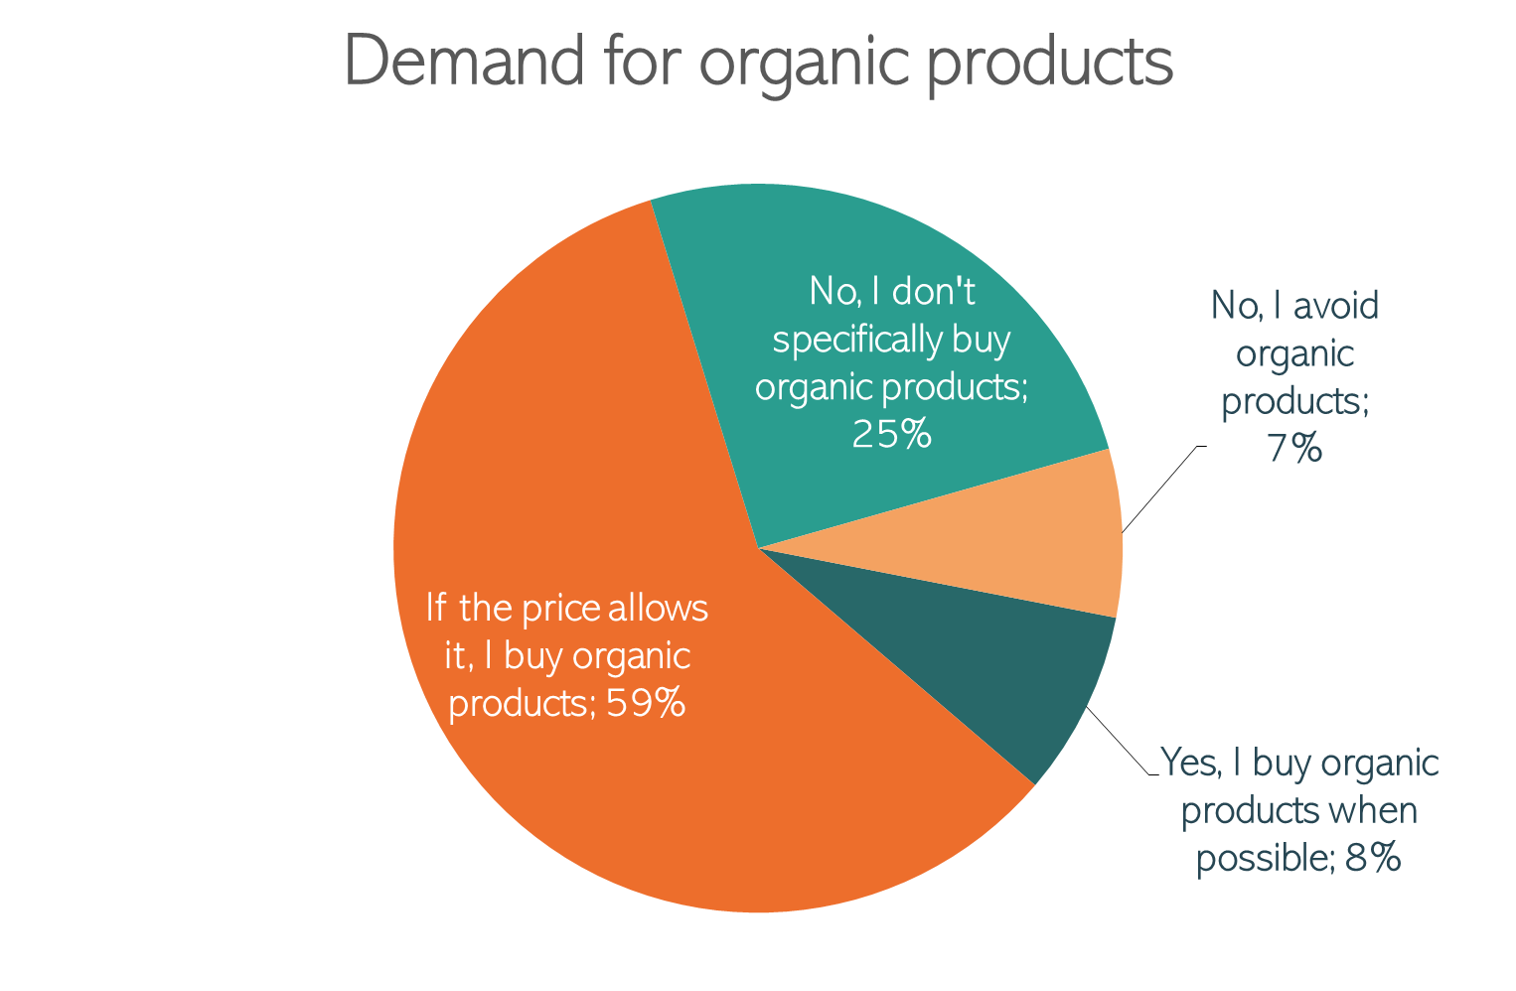 Demand for organic products